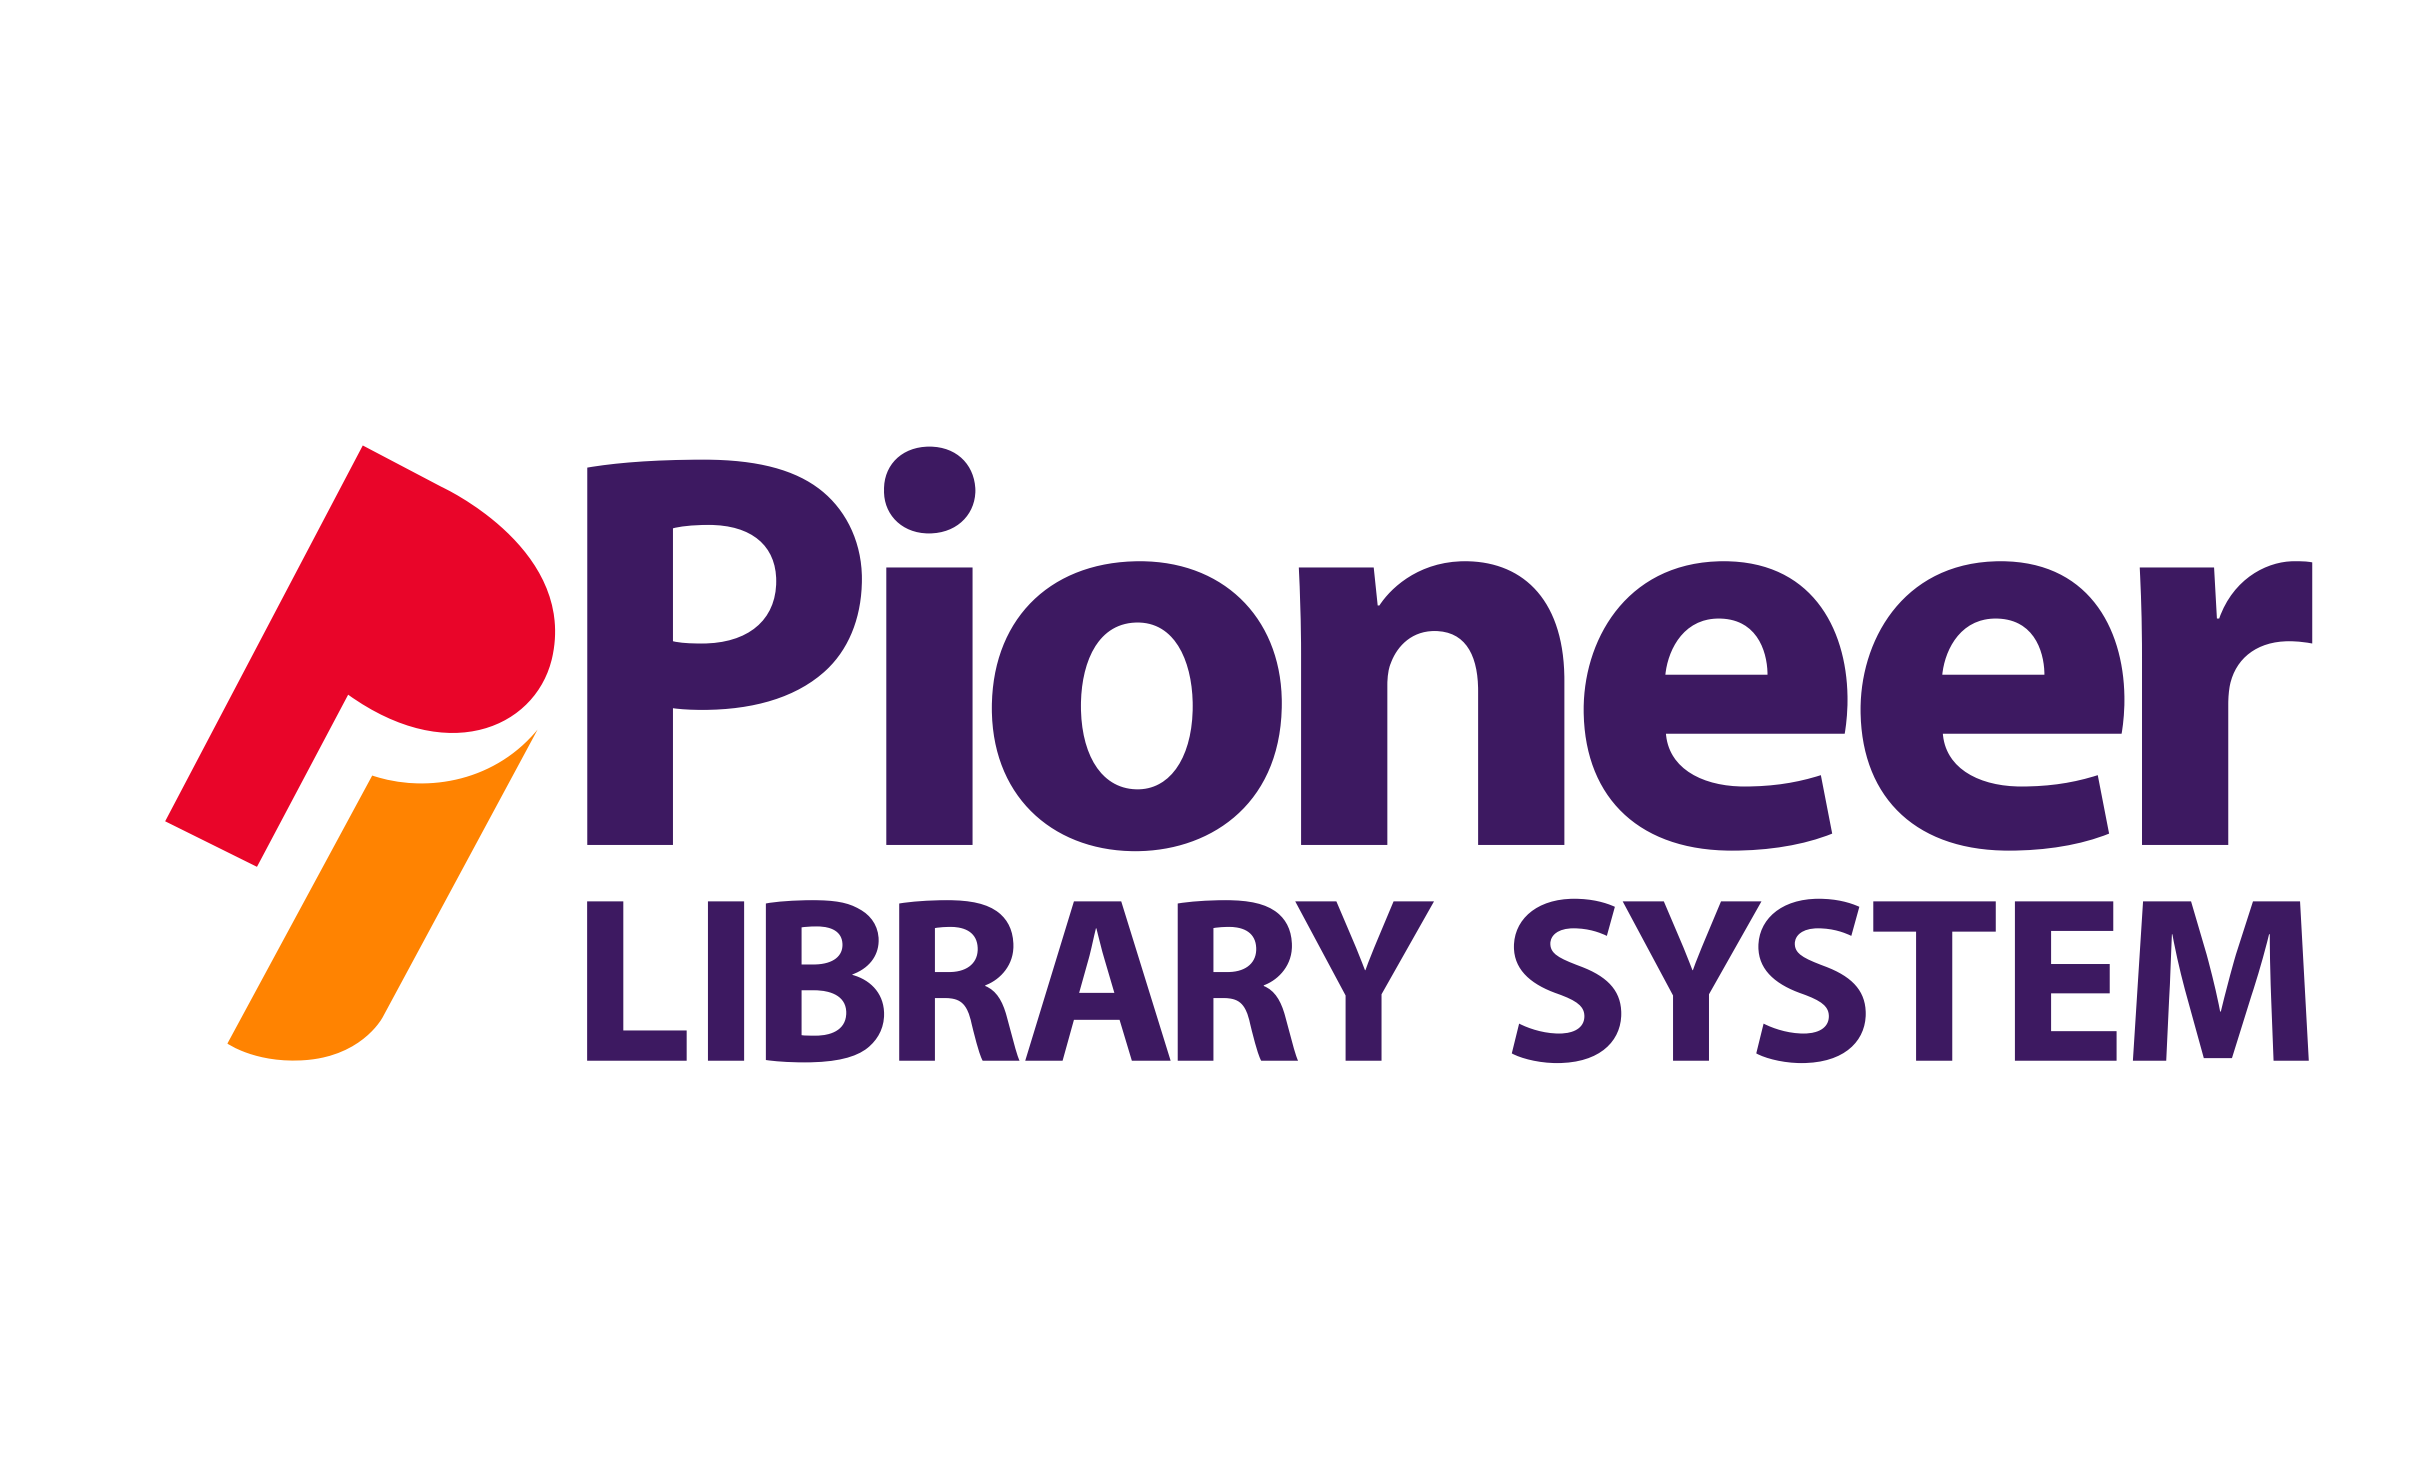 Pioneer logo saved as png.PNG